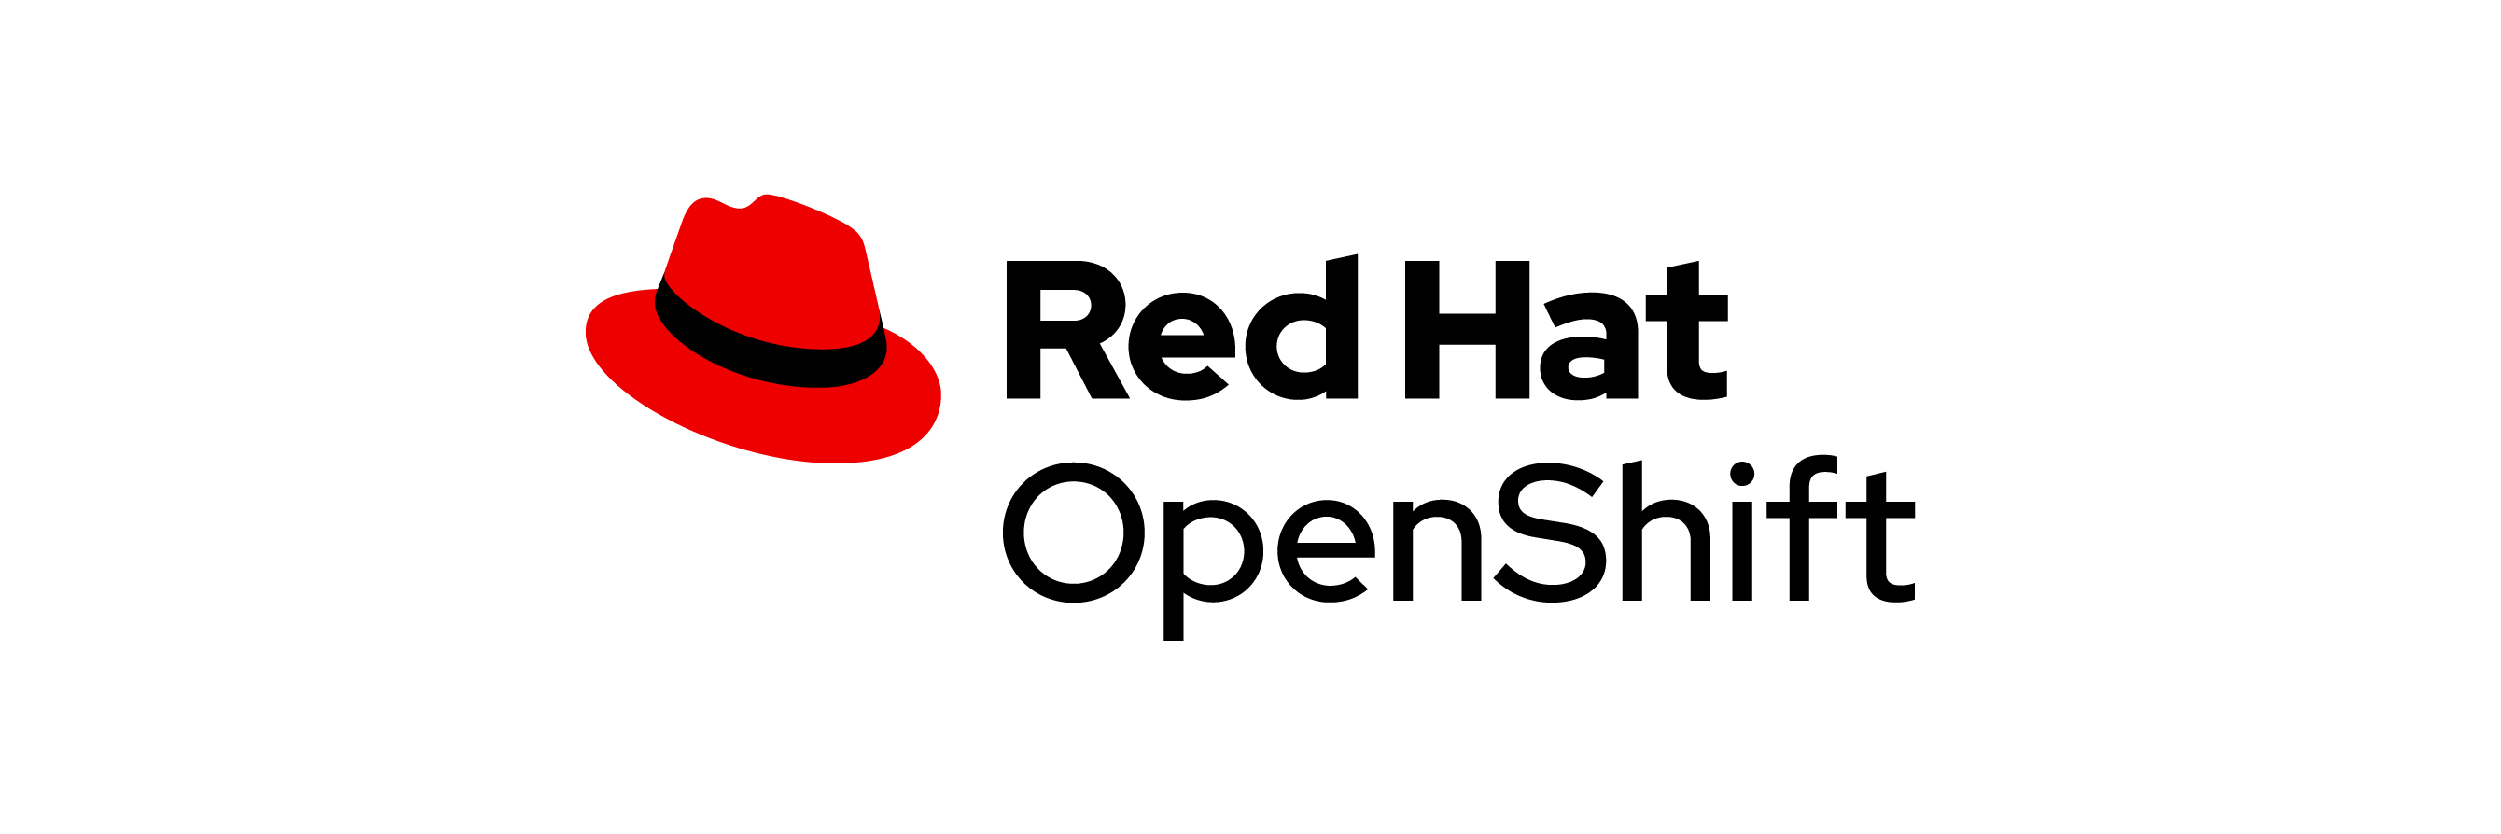 Red Hat white rectangles-15